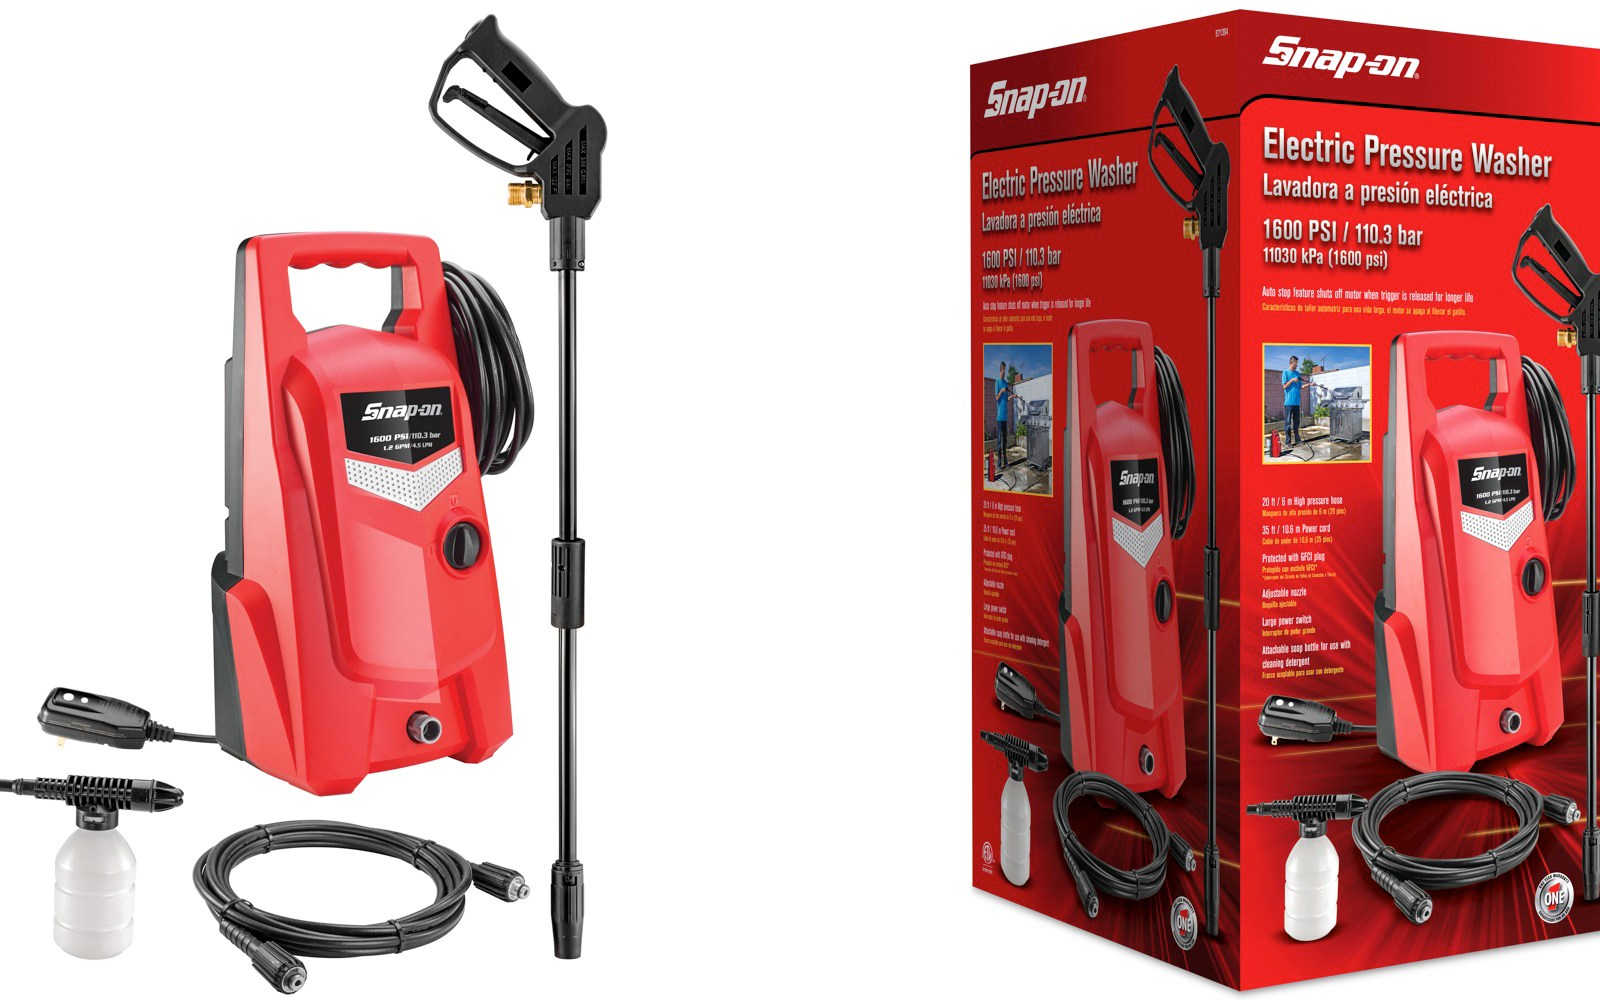 Green Deals Snap On 1600psi Electric Power Washer 90 Shipped Reg 120 More